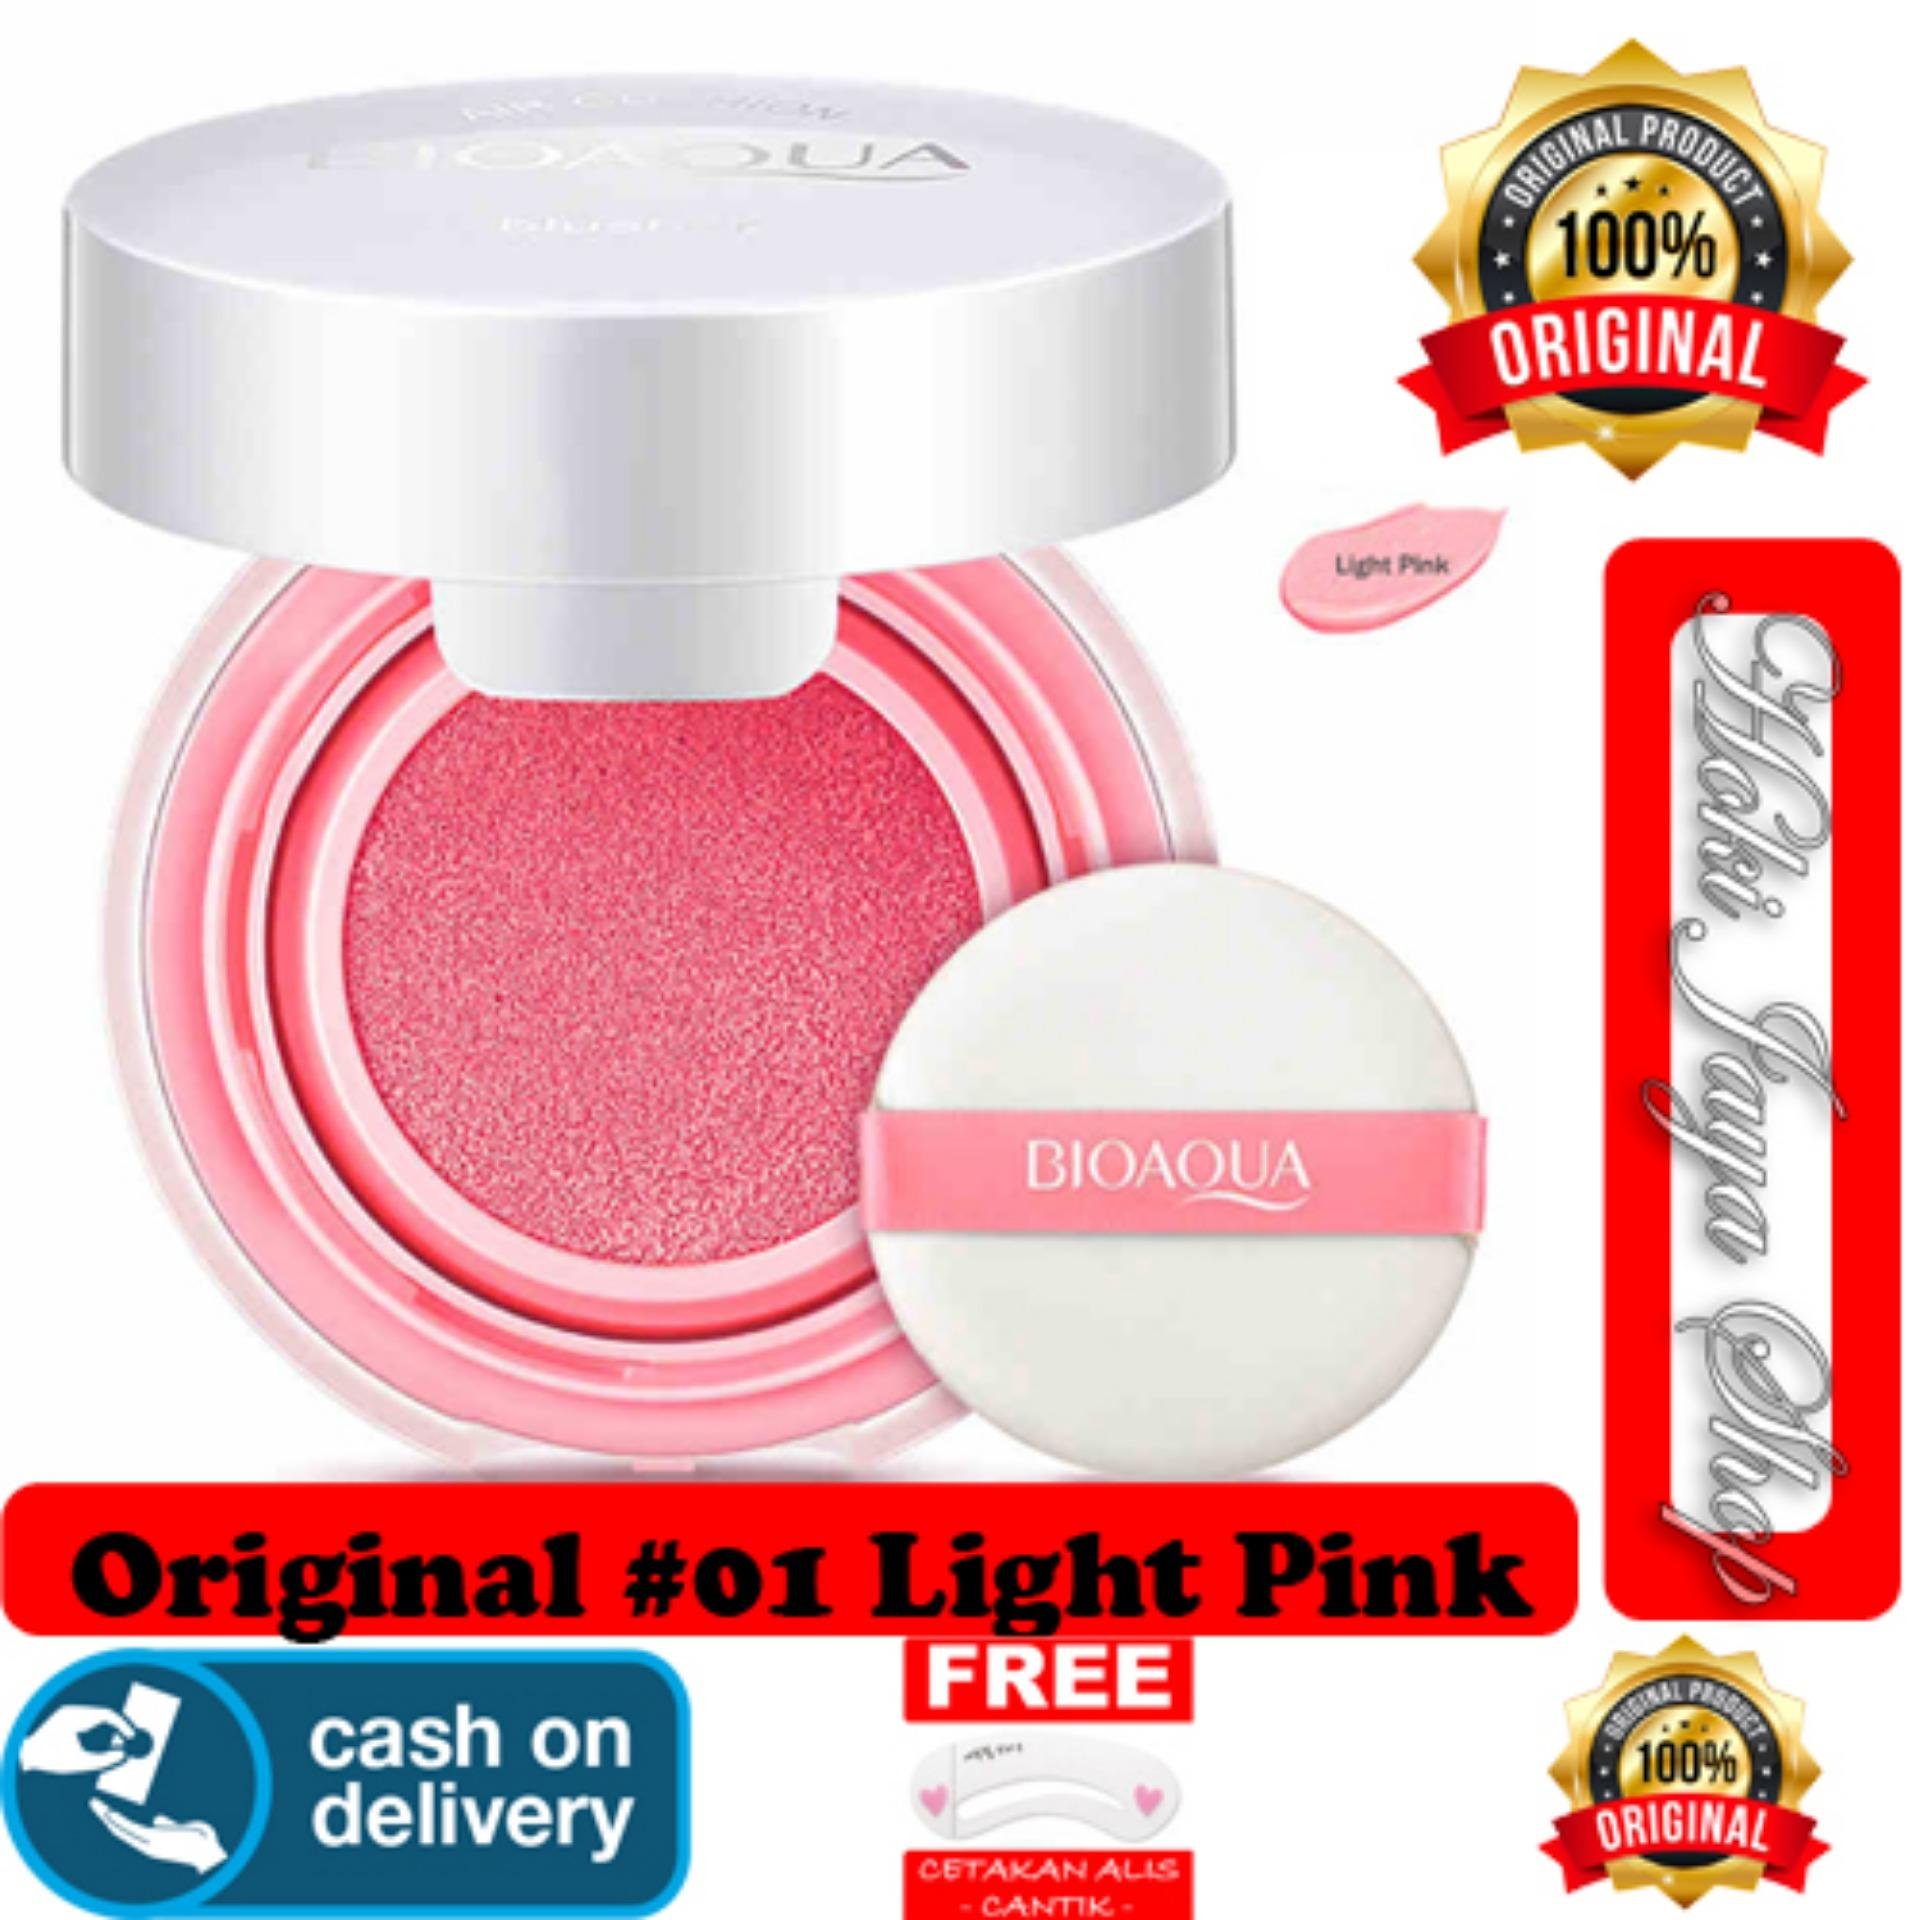 HOKI COD - 01# LIGHT PINK - BioAqua Blush On Air Cushion - Smooth Muscle Flawless - Perona Pipi + G